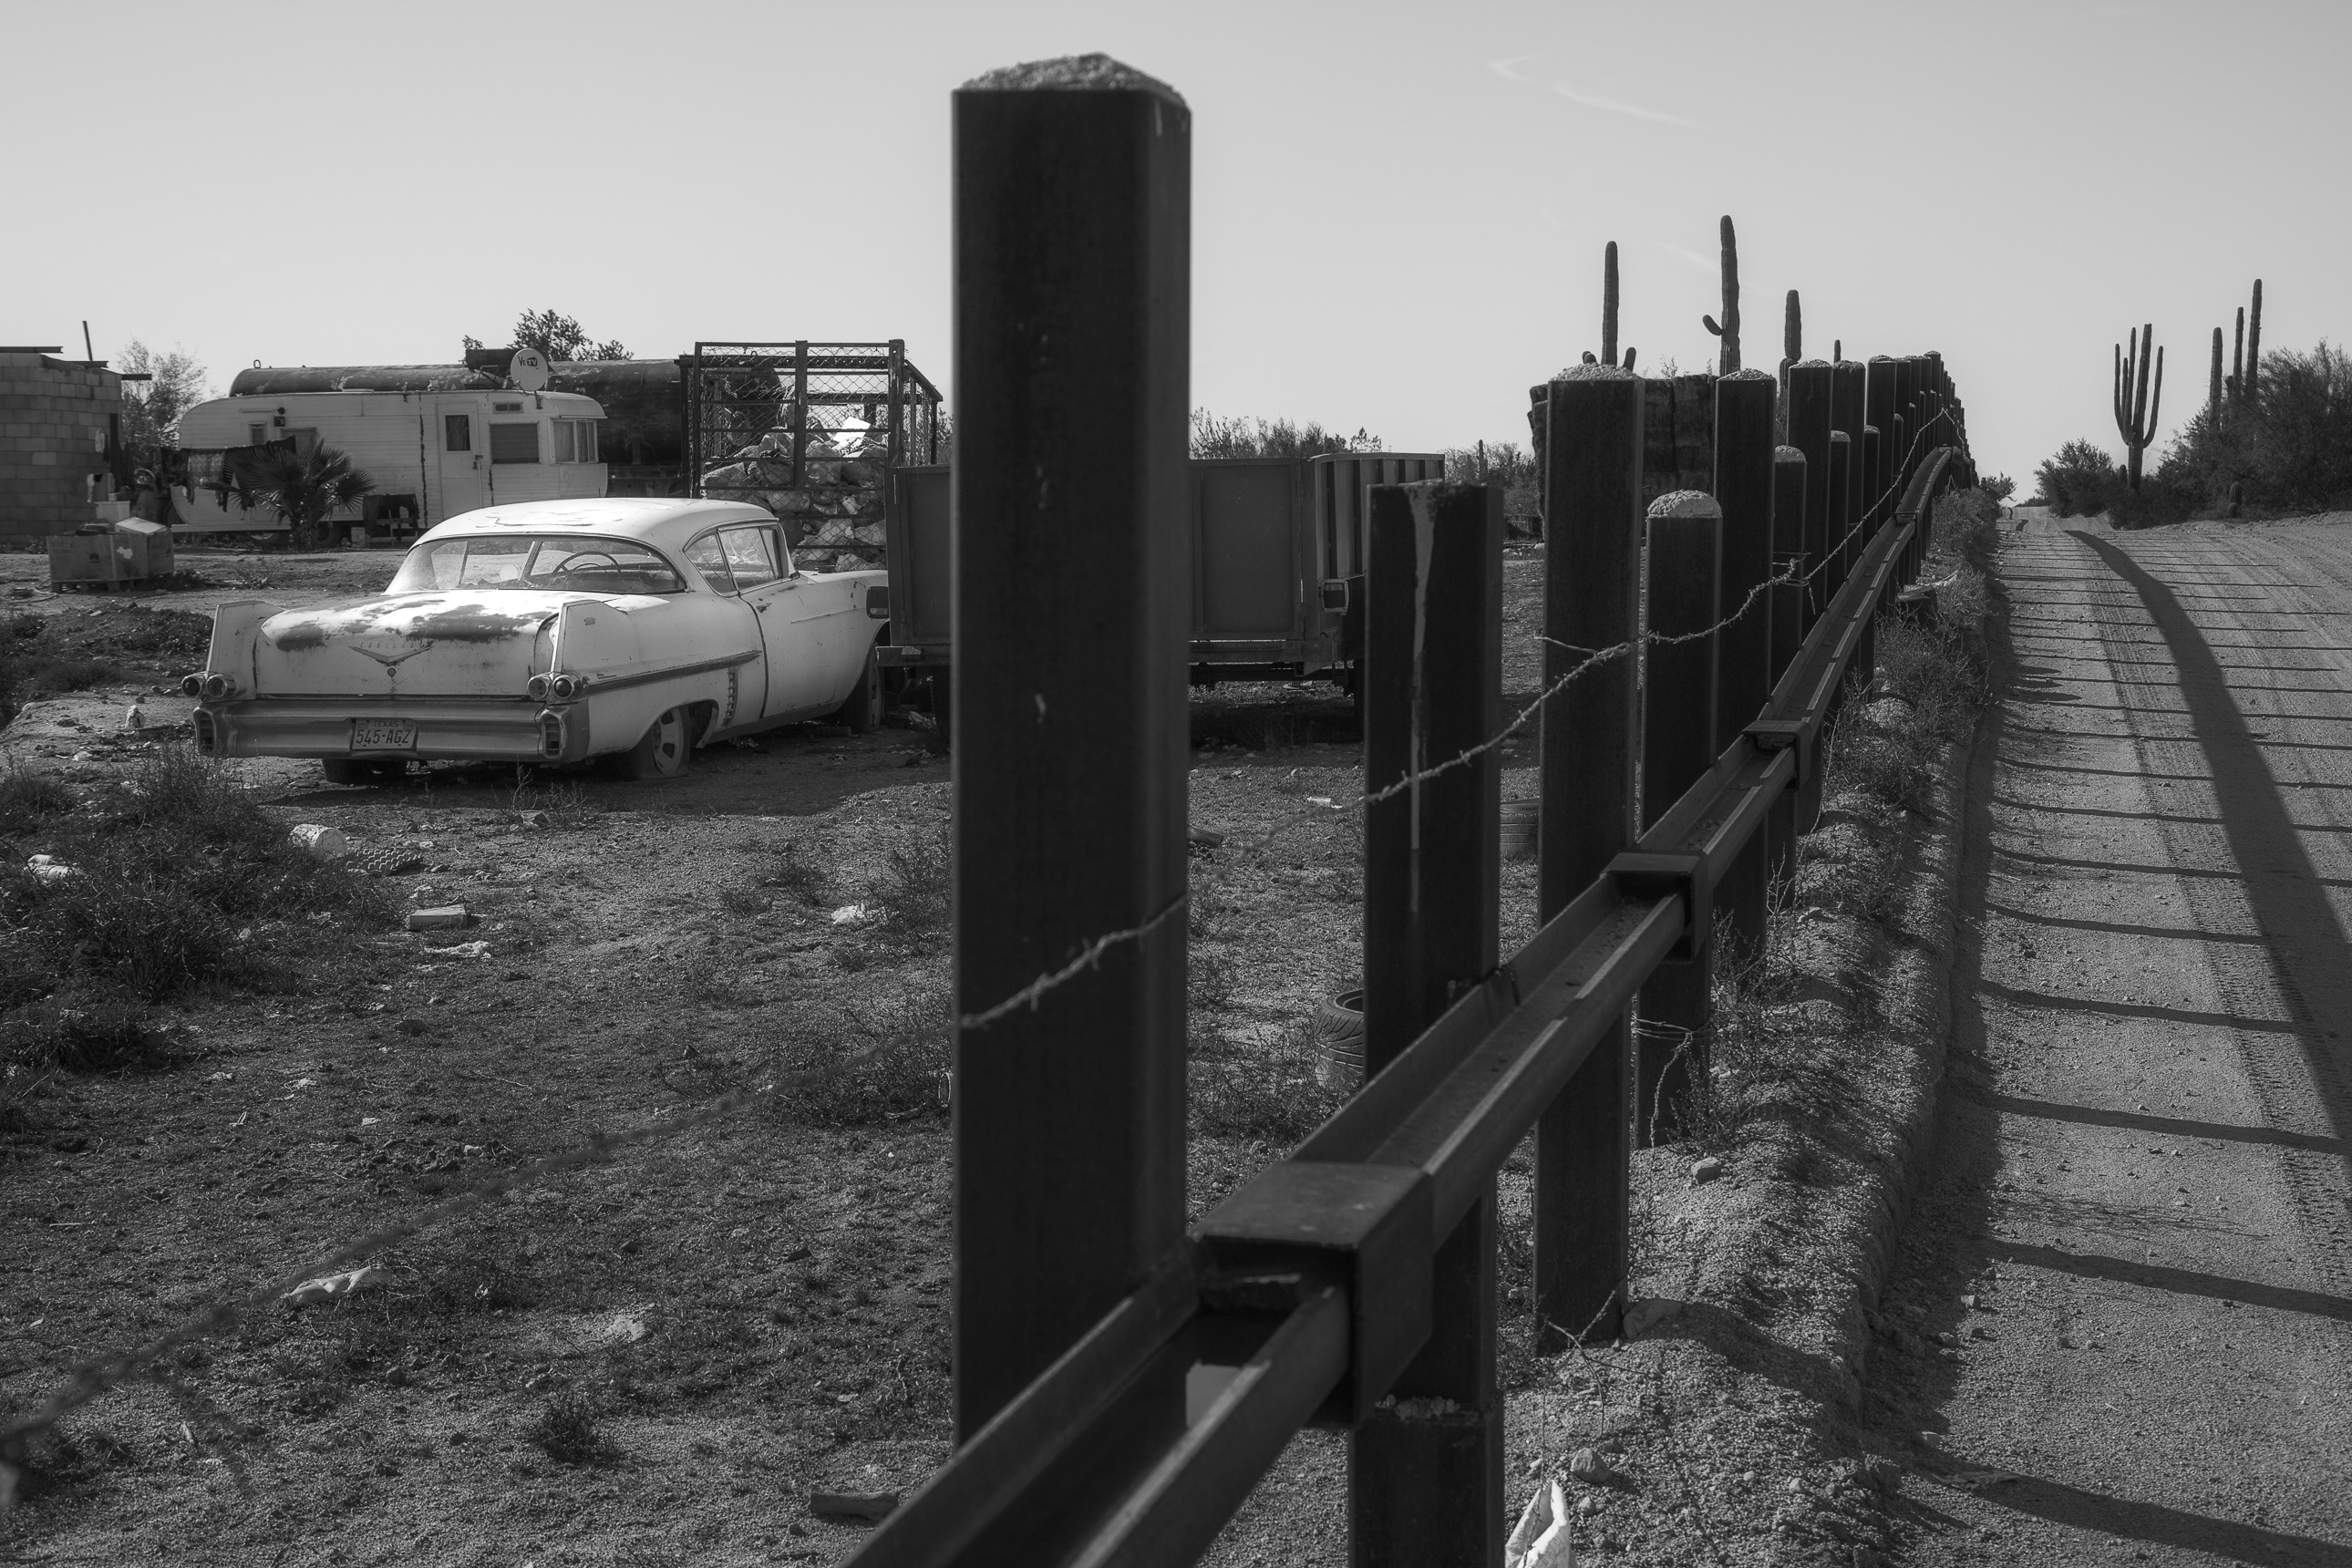 1957 Cadillac along the Mexican border